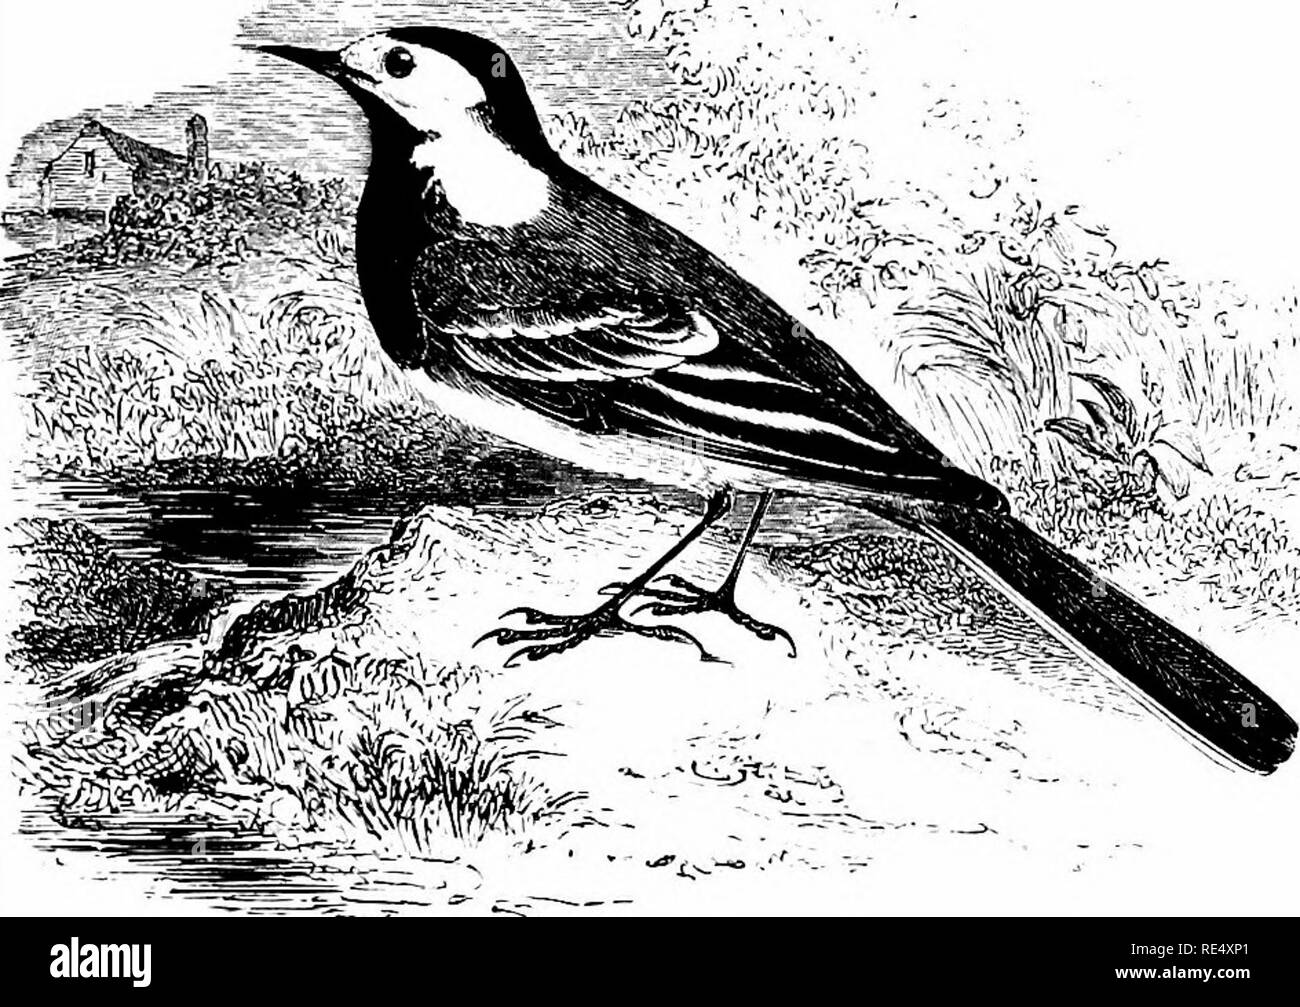 . An illustrated manual of British birds. Birds. MOTACILLID/E. 123. THE WHITE WAGTAIL. MoTACiLLA ALBA, Linnseus. This Continental representative of the familiar species already described was first recognized in England by the late Mr. F. Bond, who found two pairs at Kingsbury Reservoir, Middlesex, in the latter part of May 1841. Since that date it has occurred in a good many counties of England, being not uncommon in Cornwall in spring; Mr. Haigh found it numerous in North Wales on the spring passages of 1891 and 1897 ; and it is said to have nested in Devon, the Isle of Wight, Kent, Middlesex - Stock Image